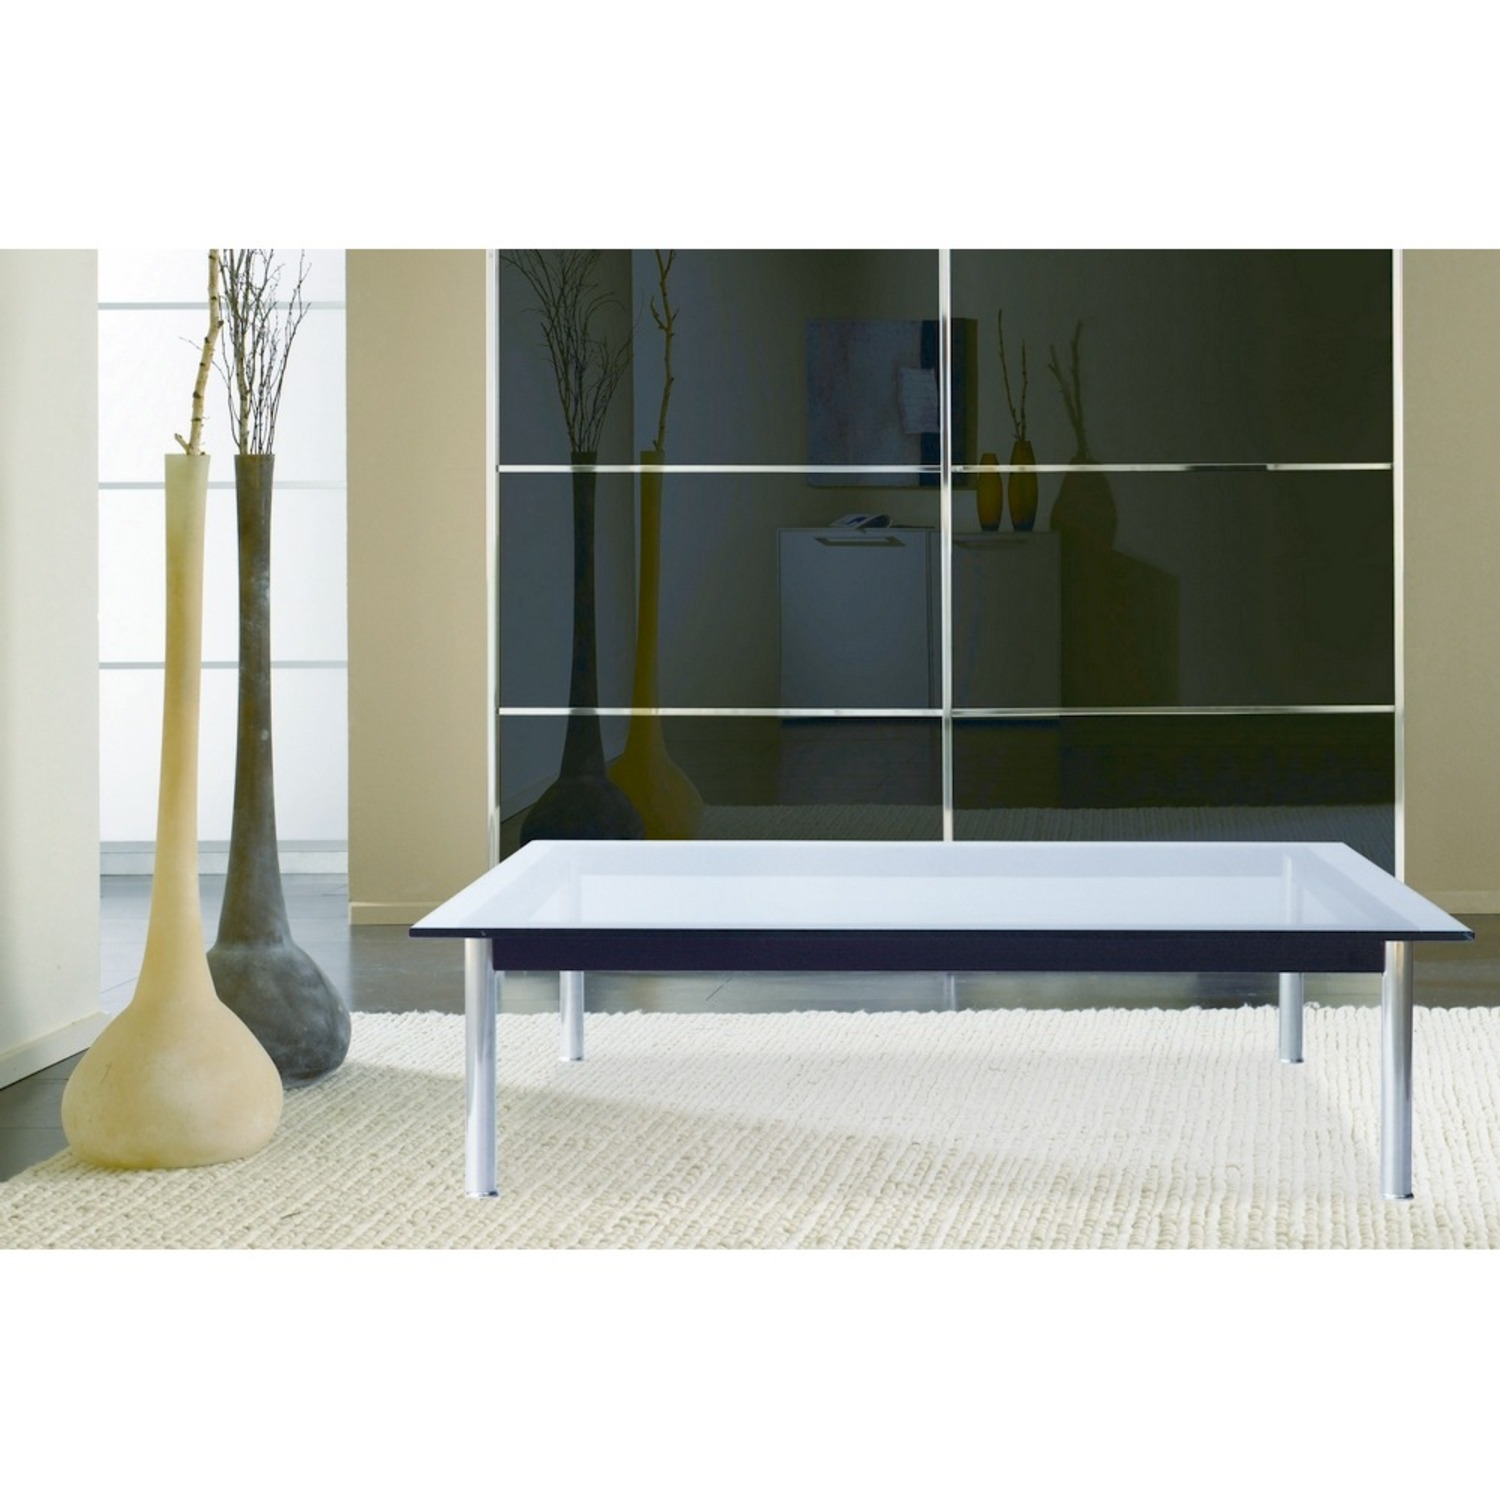 Coffee Table In Clear Chrome Finish W/ Glass Top - image-6